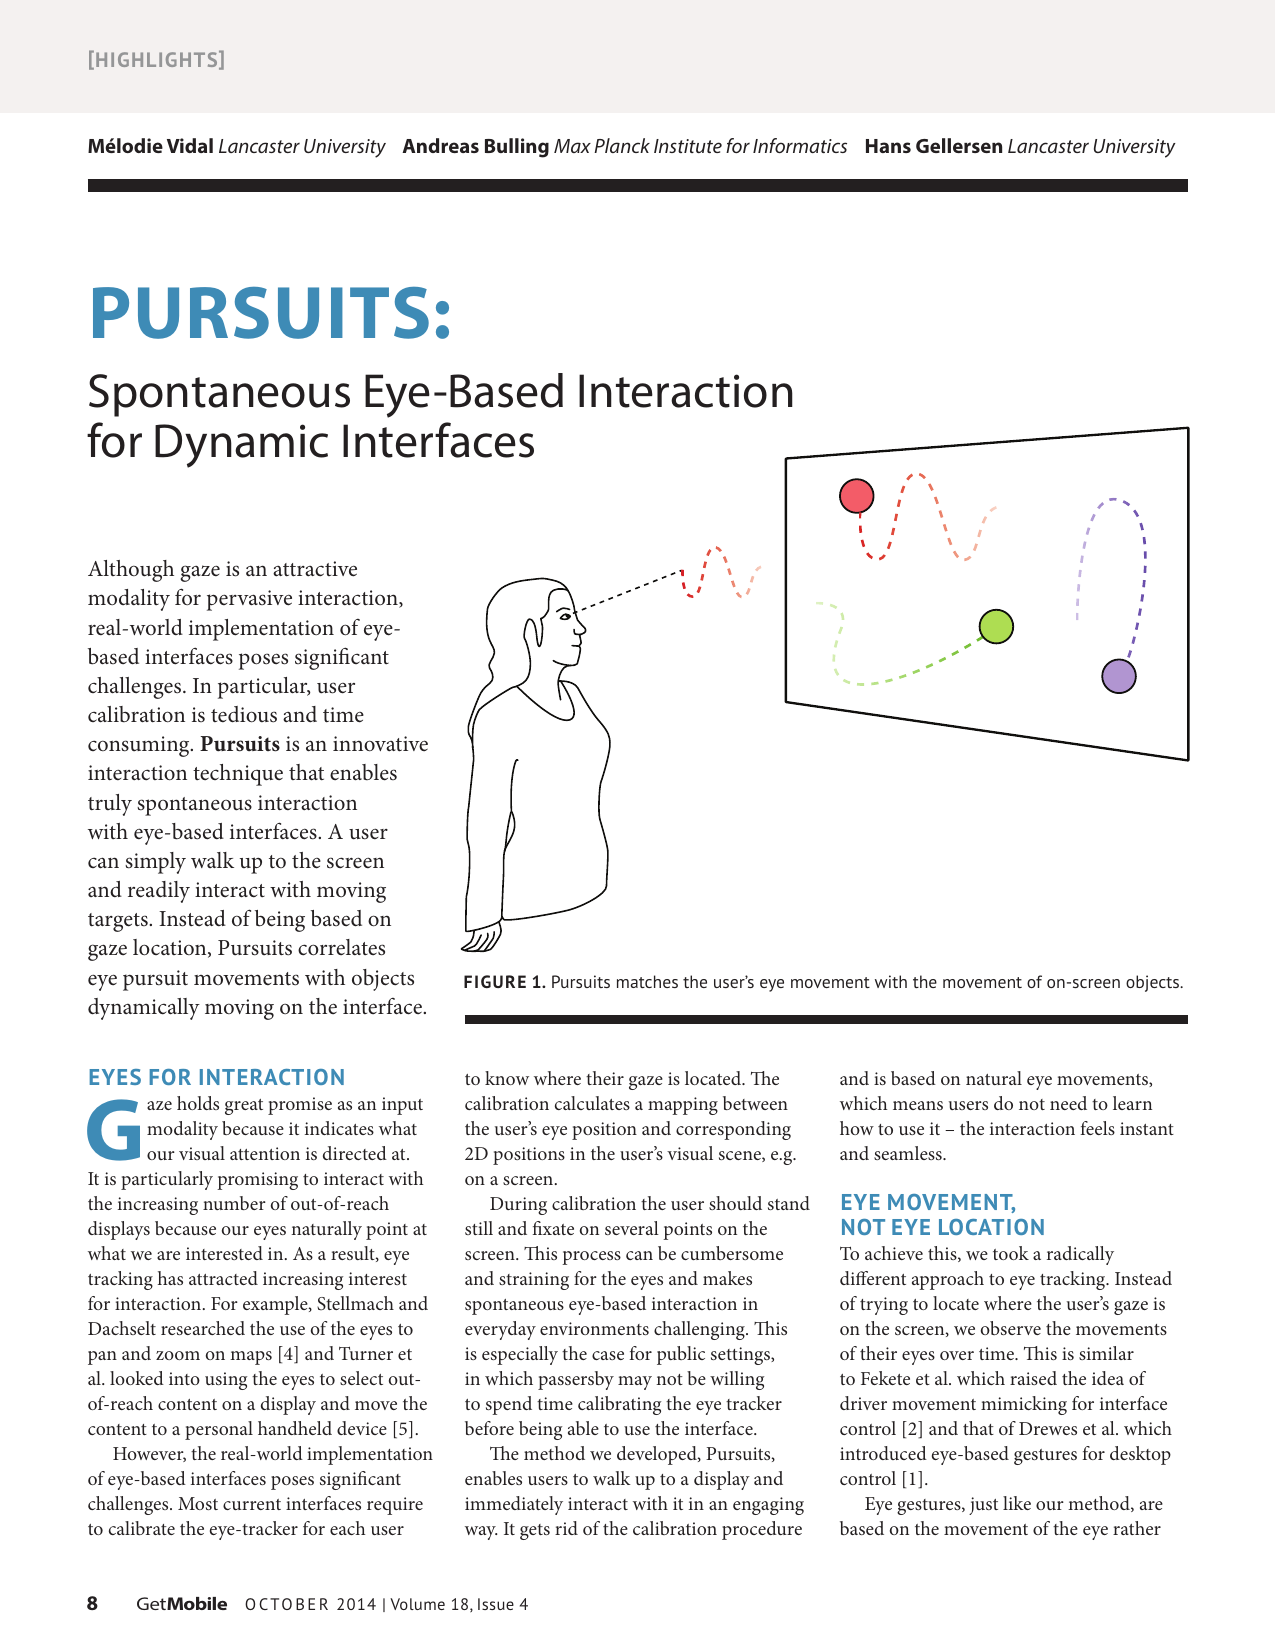 Pursuits: Spontaneous Eye-Based Interaction for Dynamic Interfaces